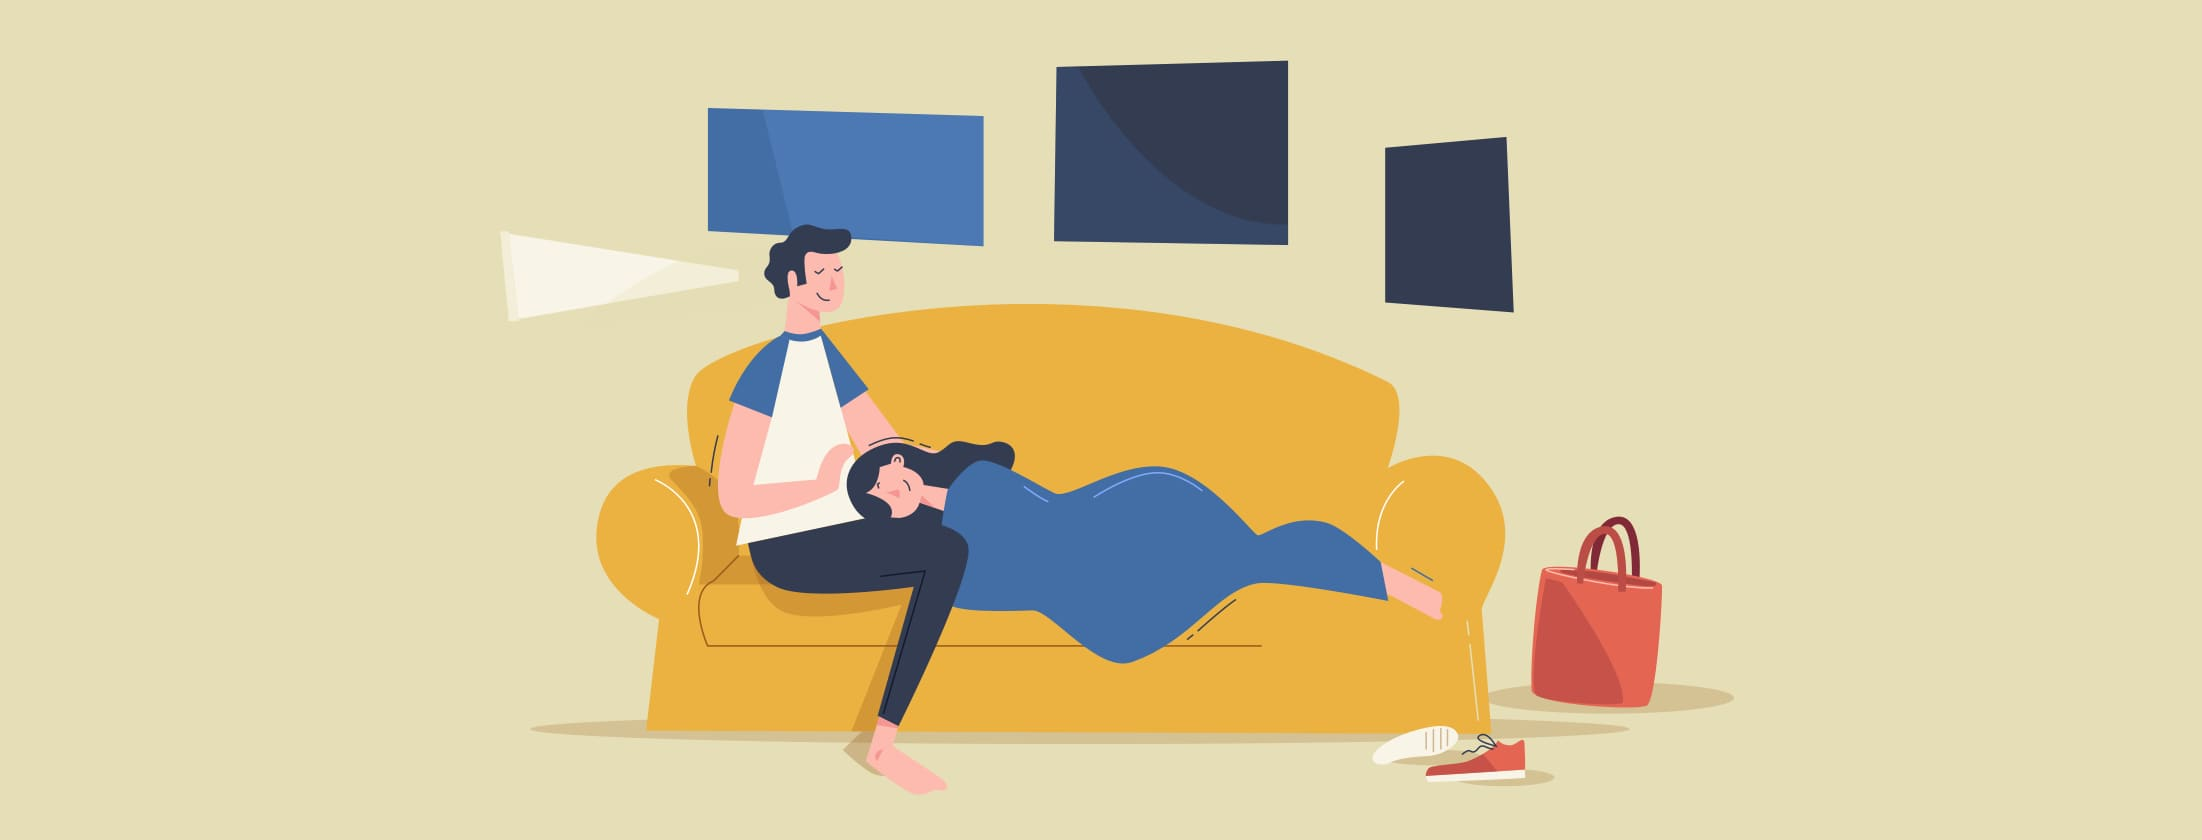 women laying down on couch next to man